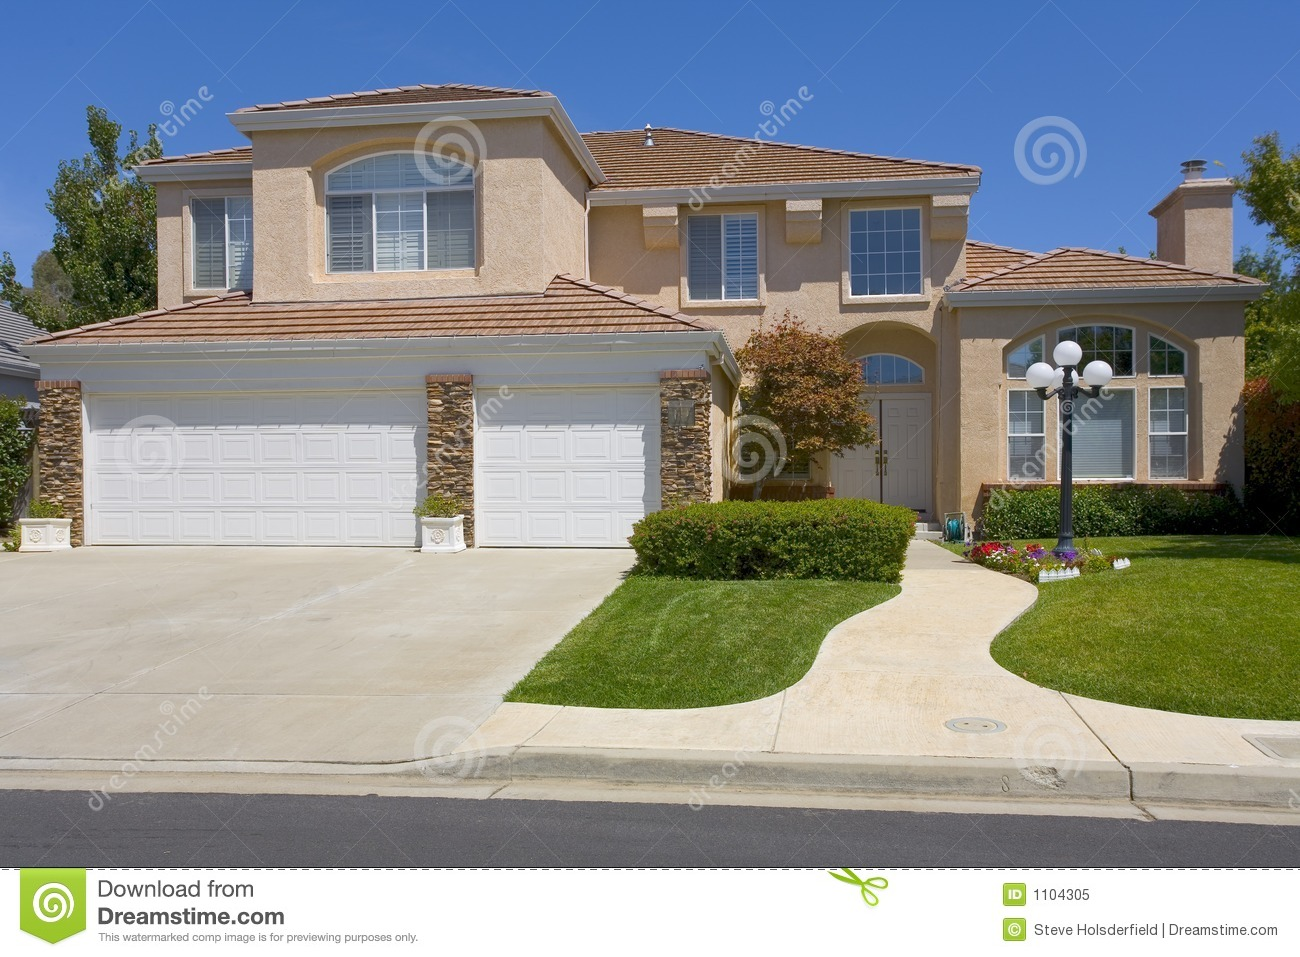 Two story stucco home with a street light stock image for Two story home